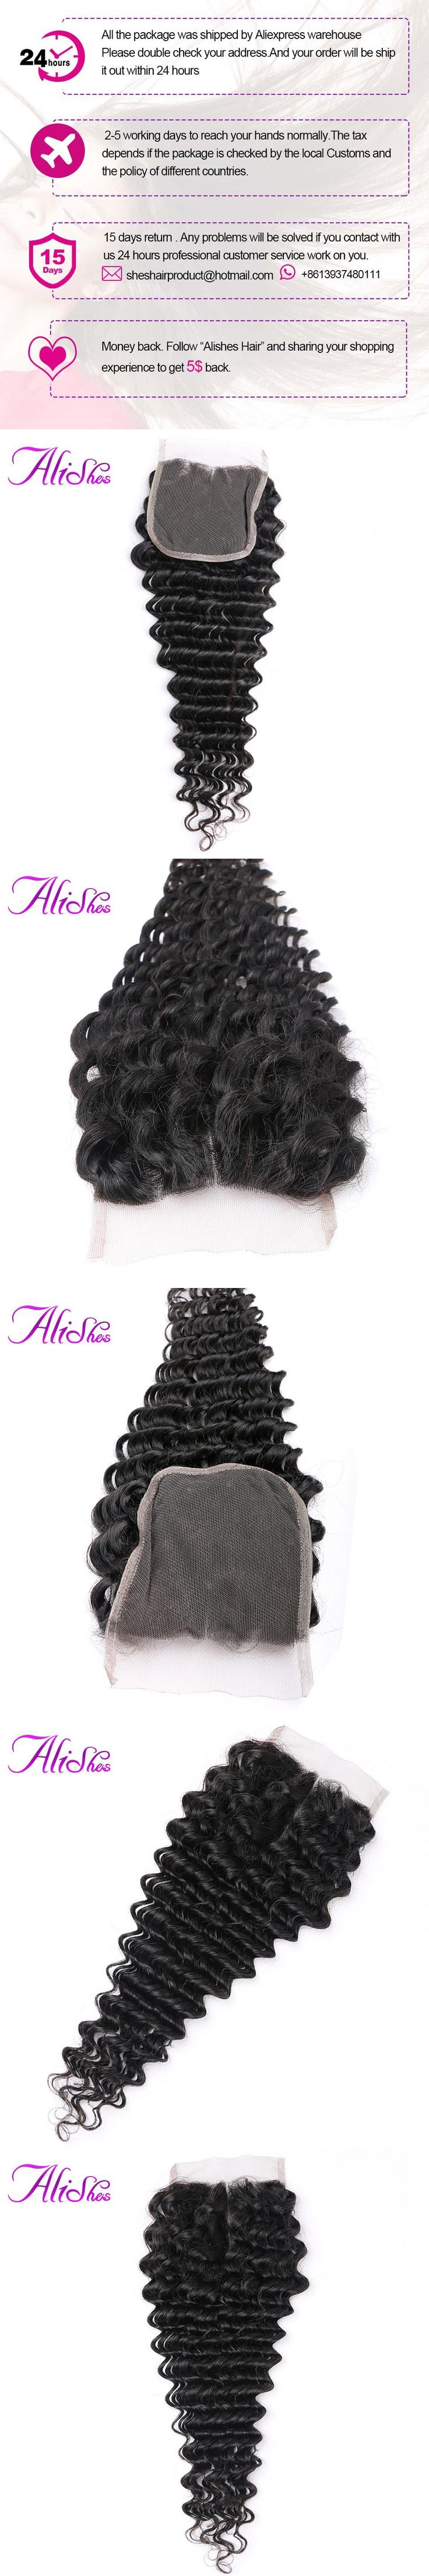 Alishes Brazilian Deep Wave Hair Closure Middle Part Non Remy Human Hair Closure 130% Density Swiss Lace Closure Bleached Knots